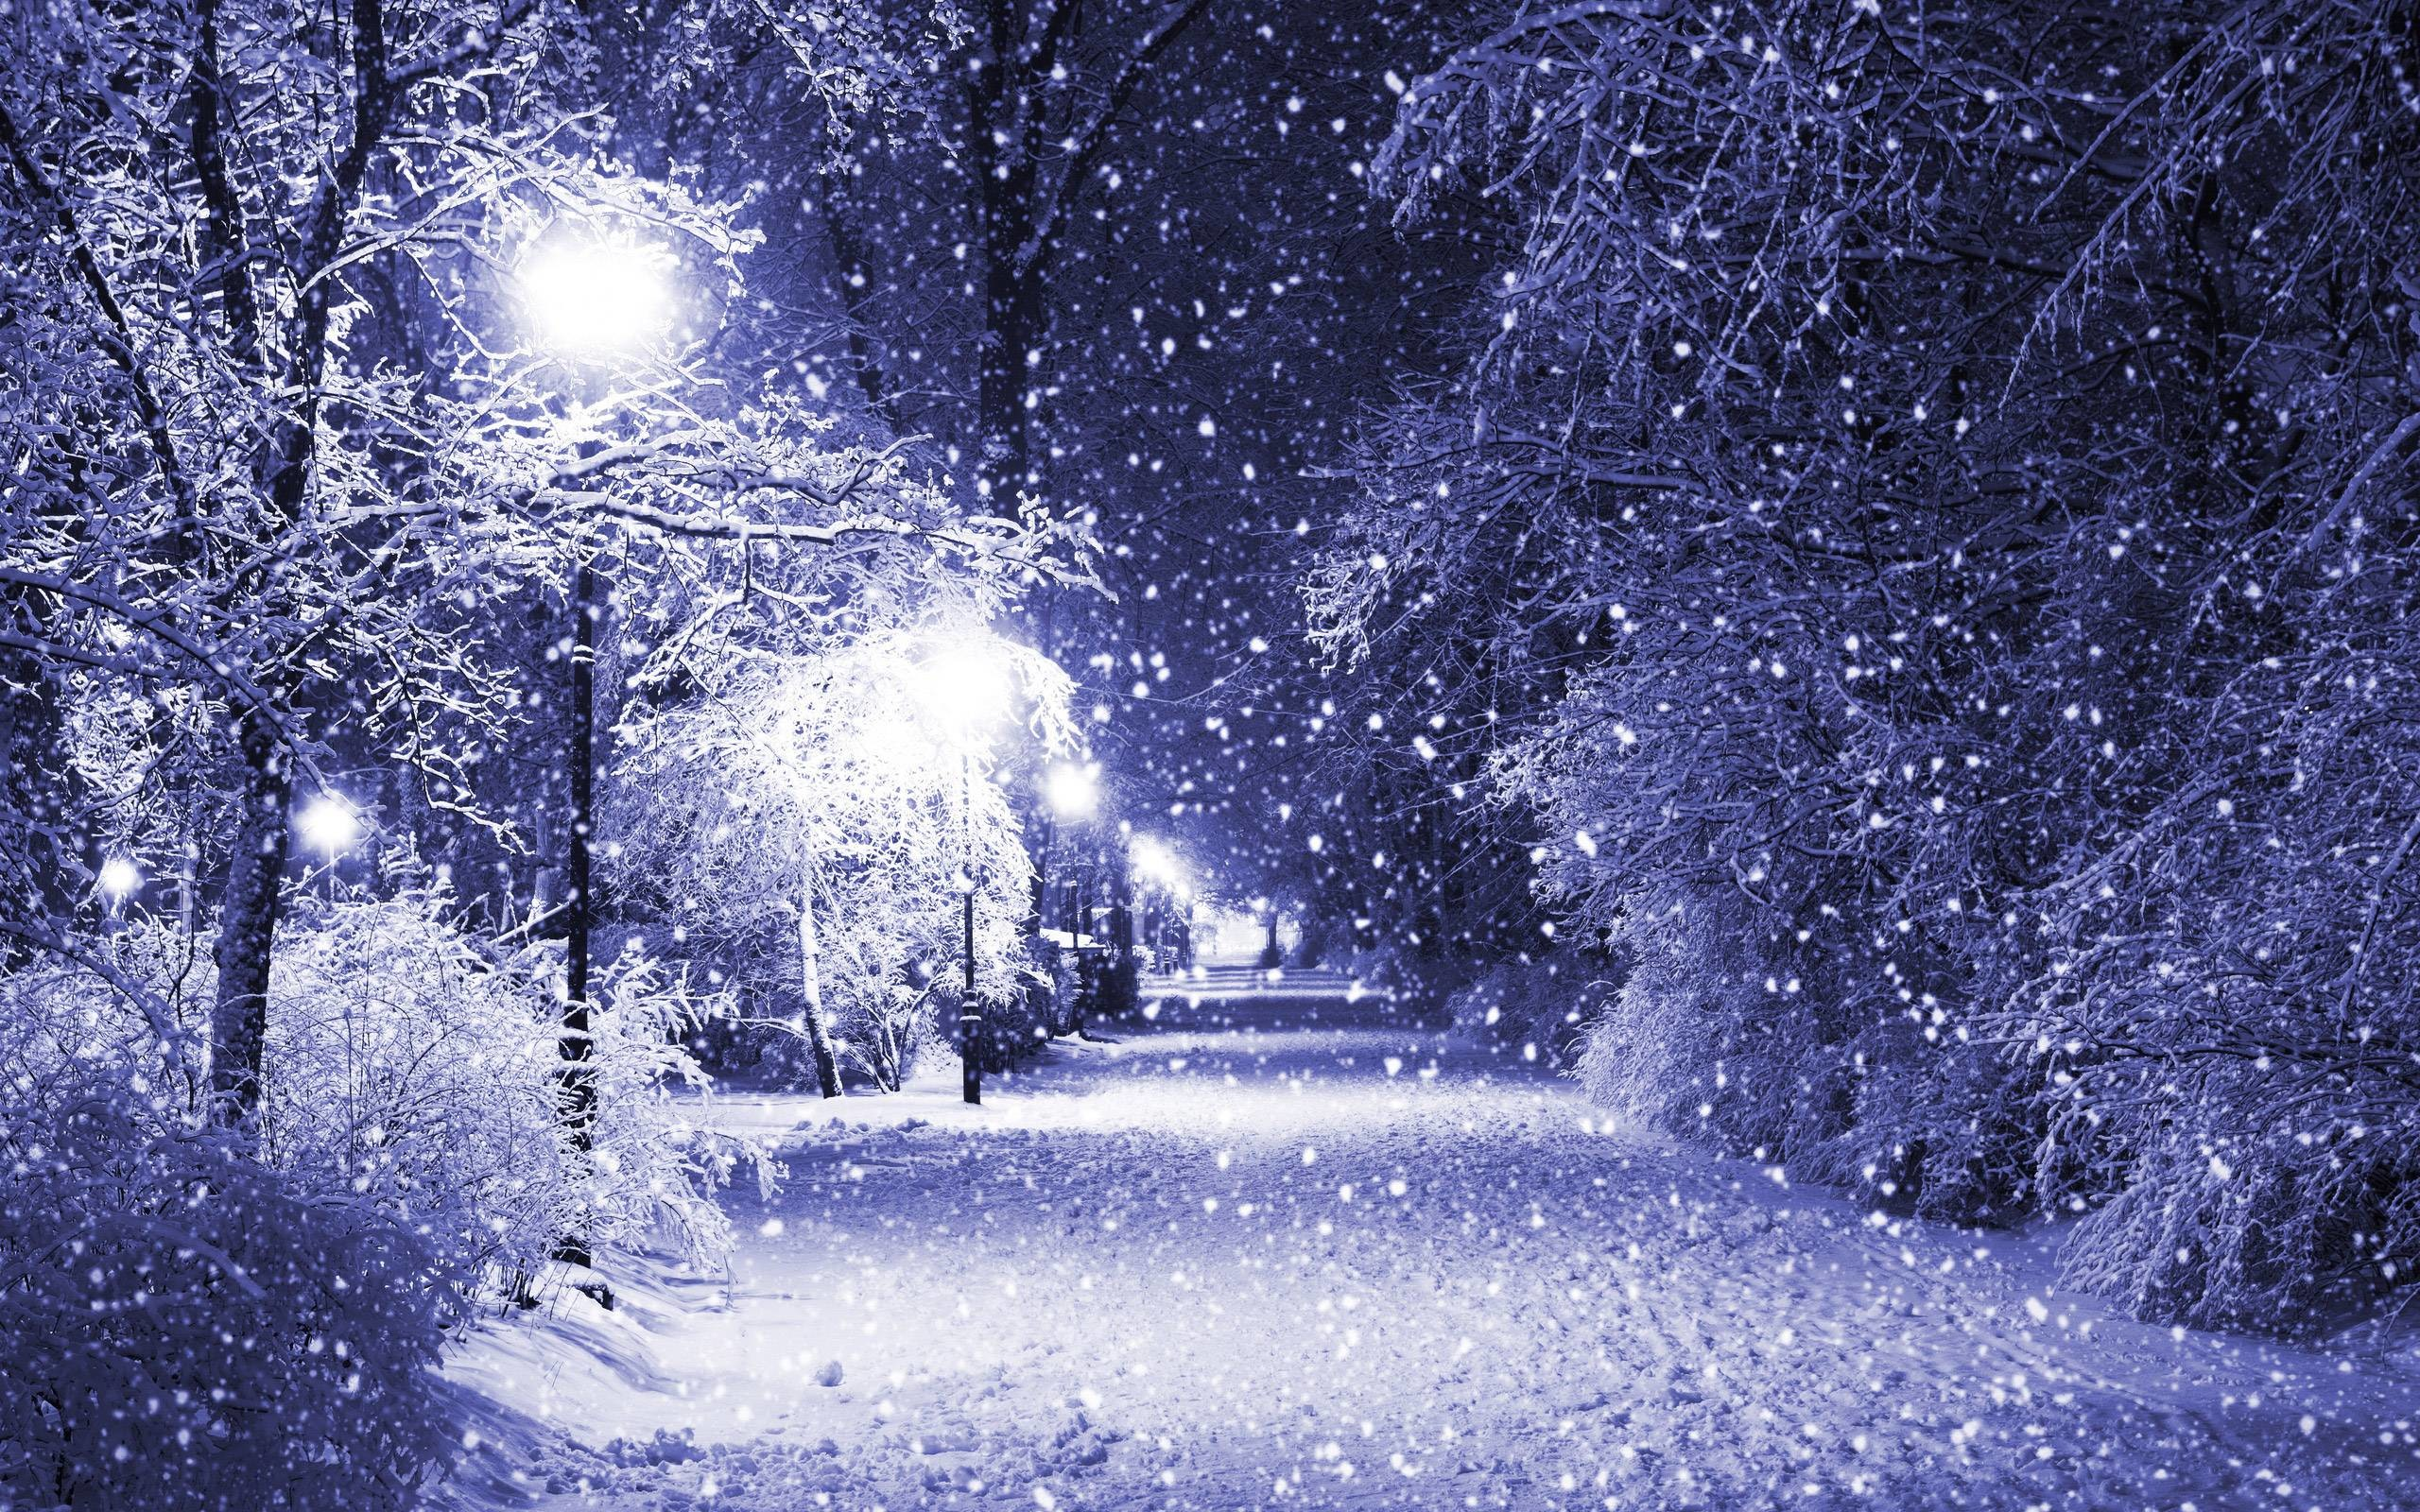 snowy christmas backgrounds (48+ images)